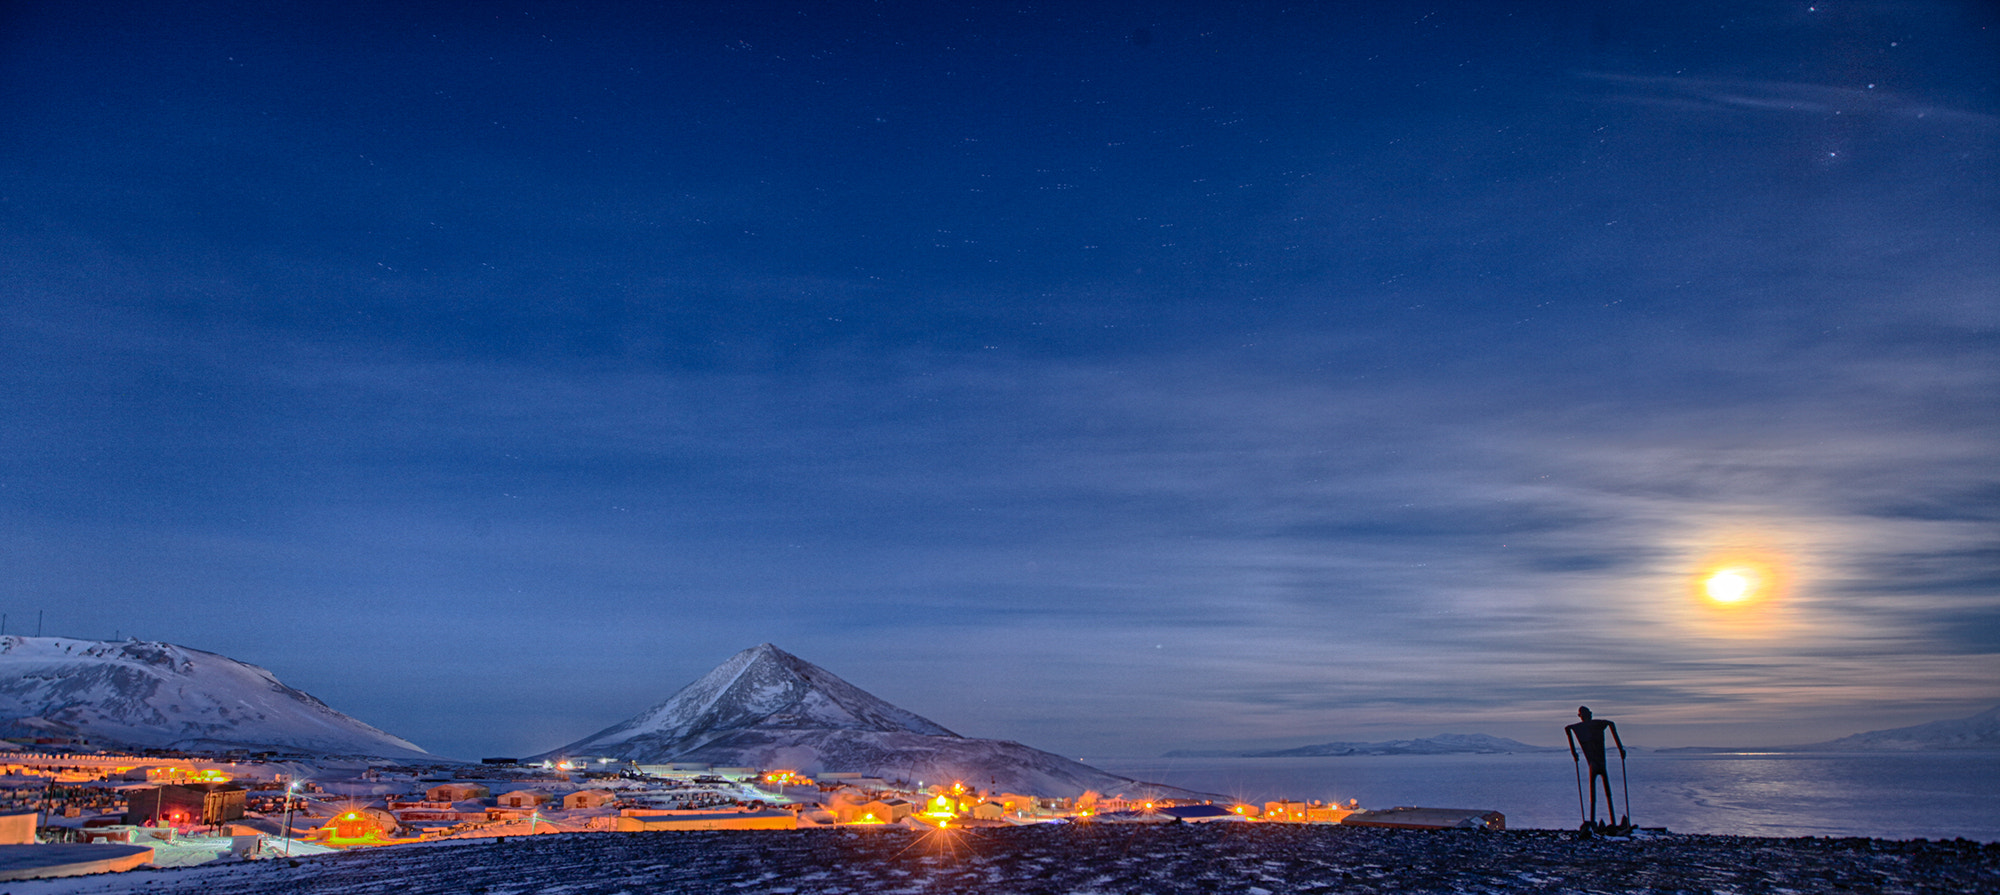 Photograph Full Moon and Skier over McMurdo by Deven Stross on 500px